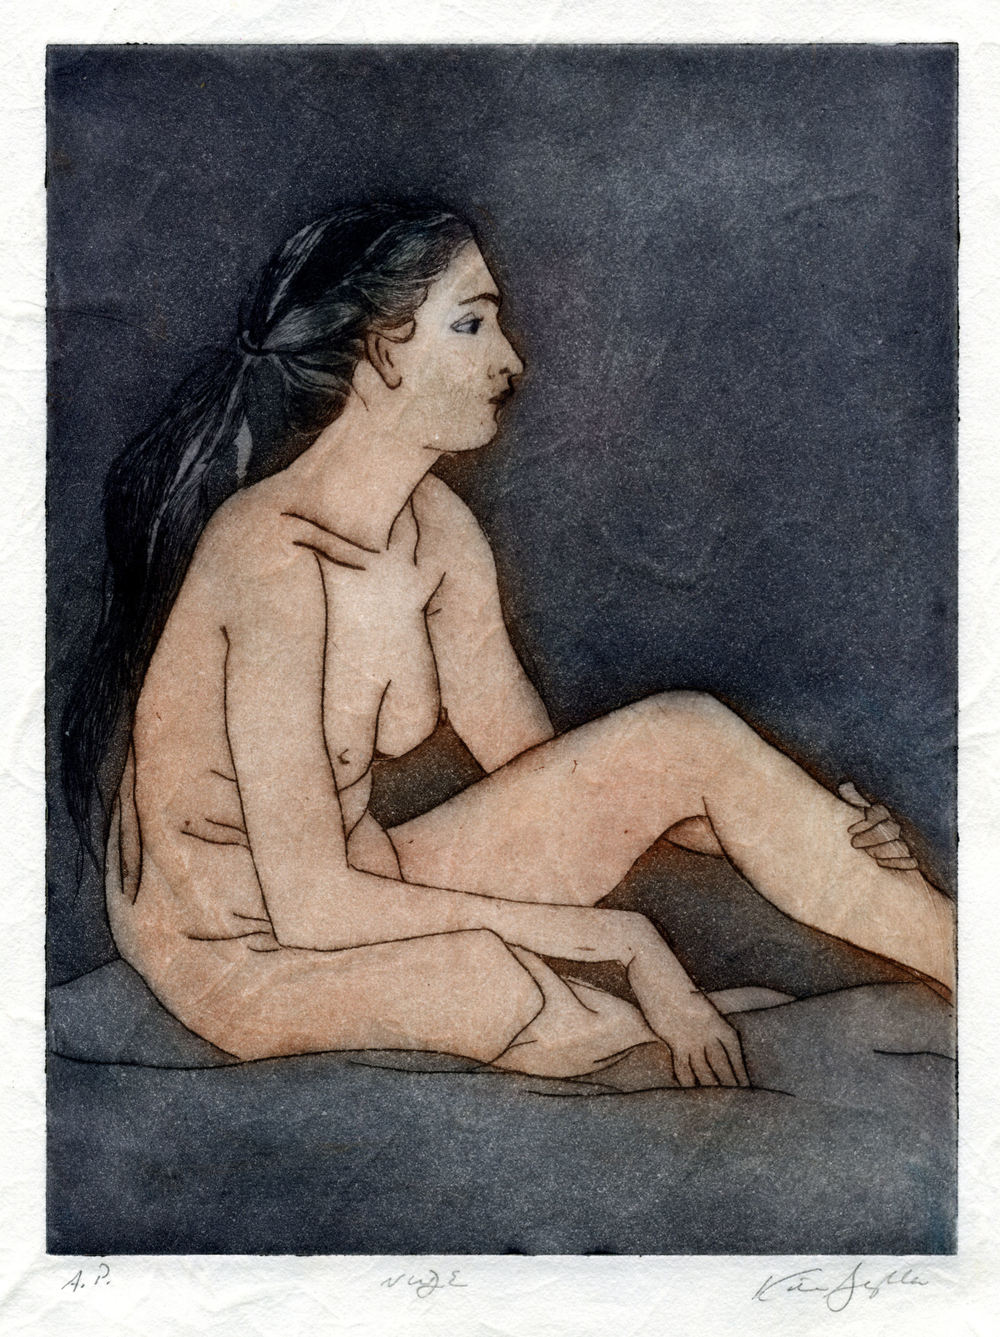 Nude, drypoint etching and chine colle